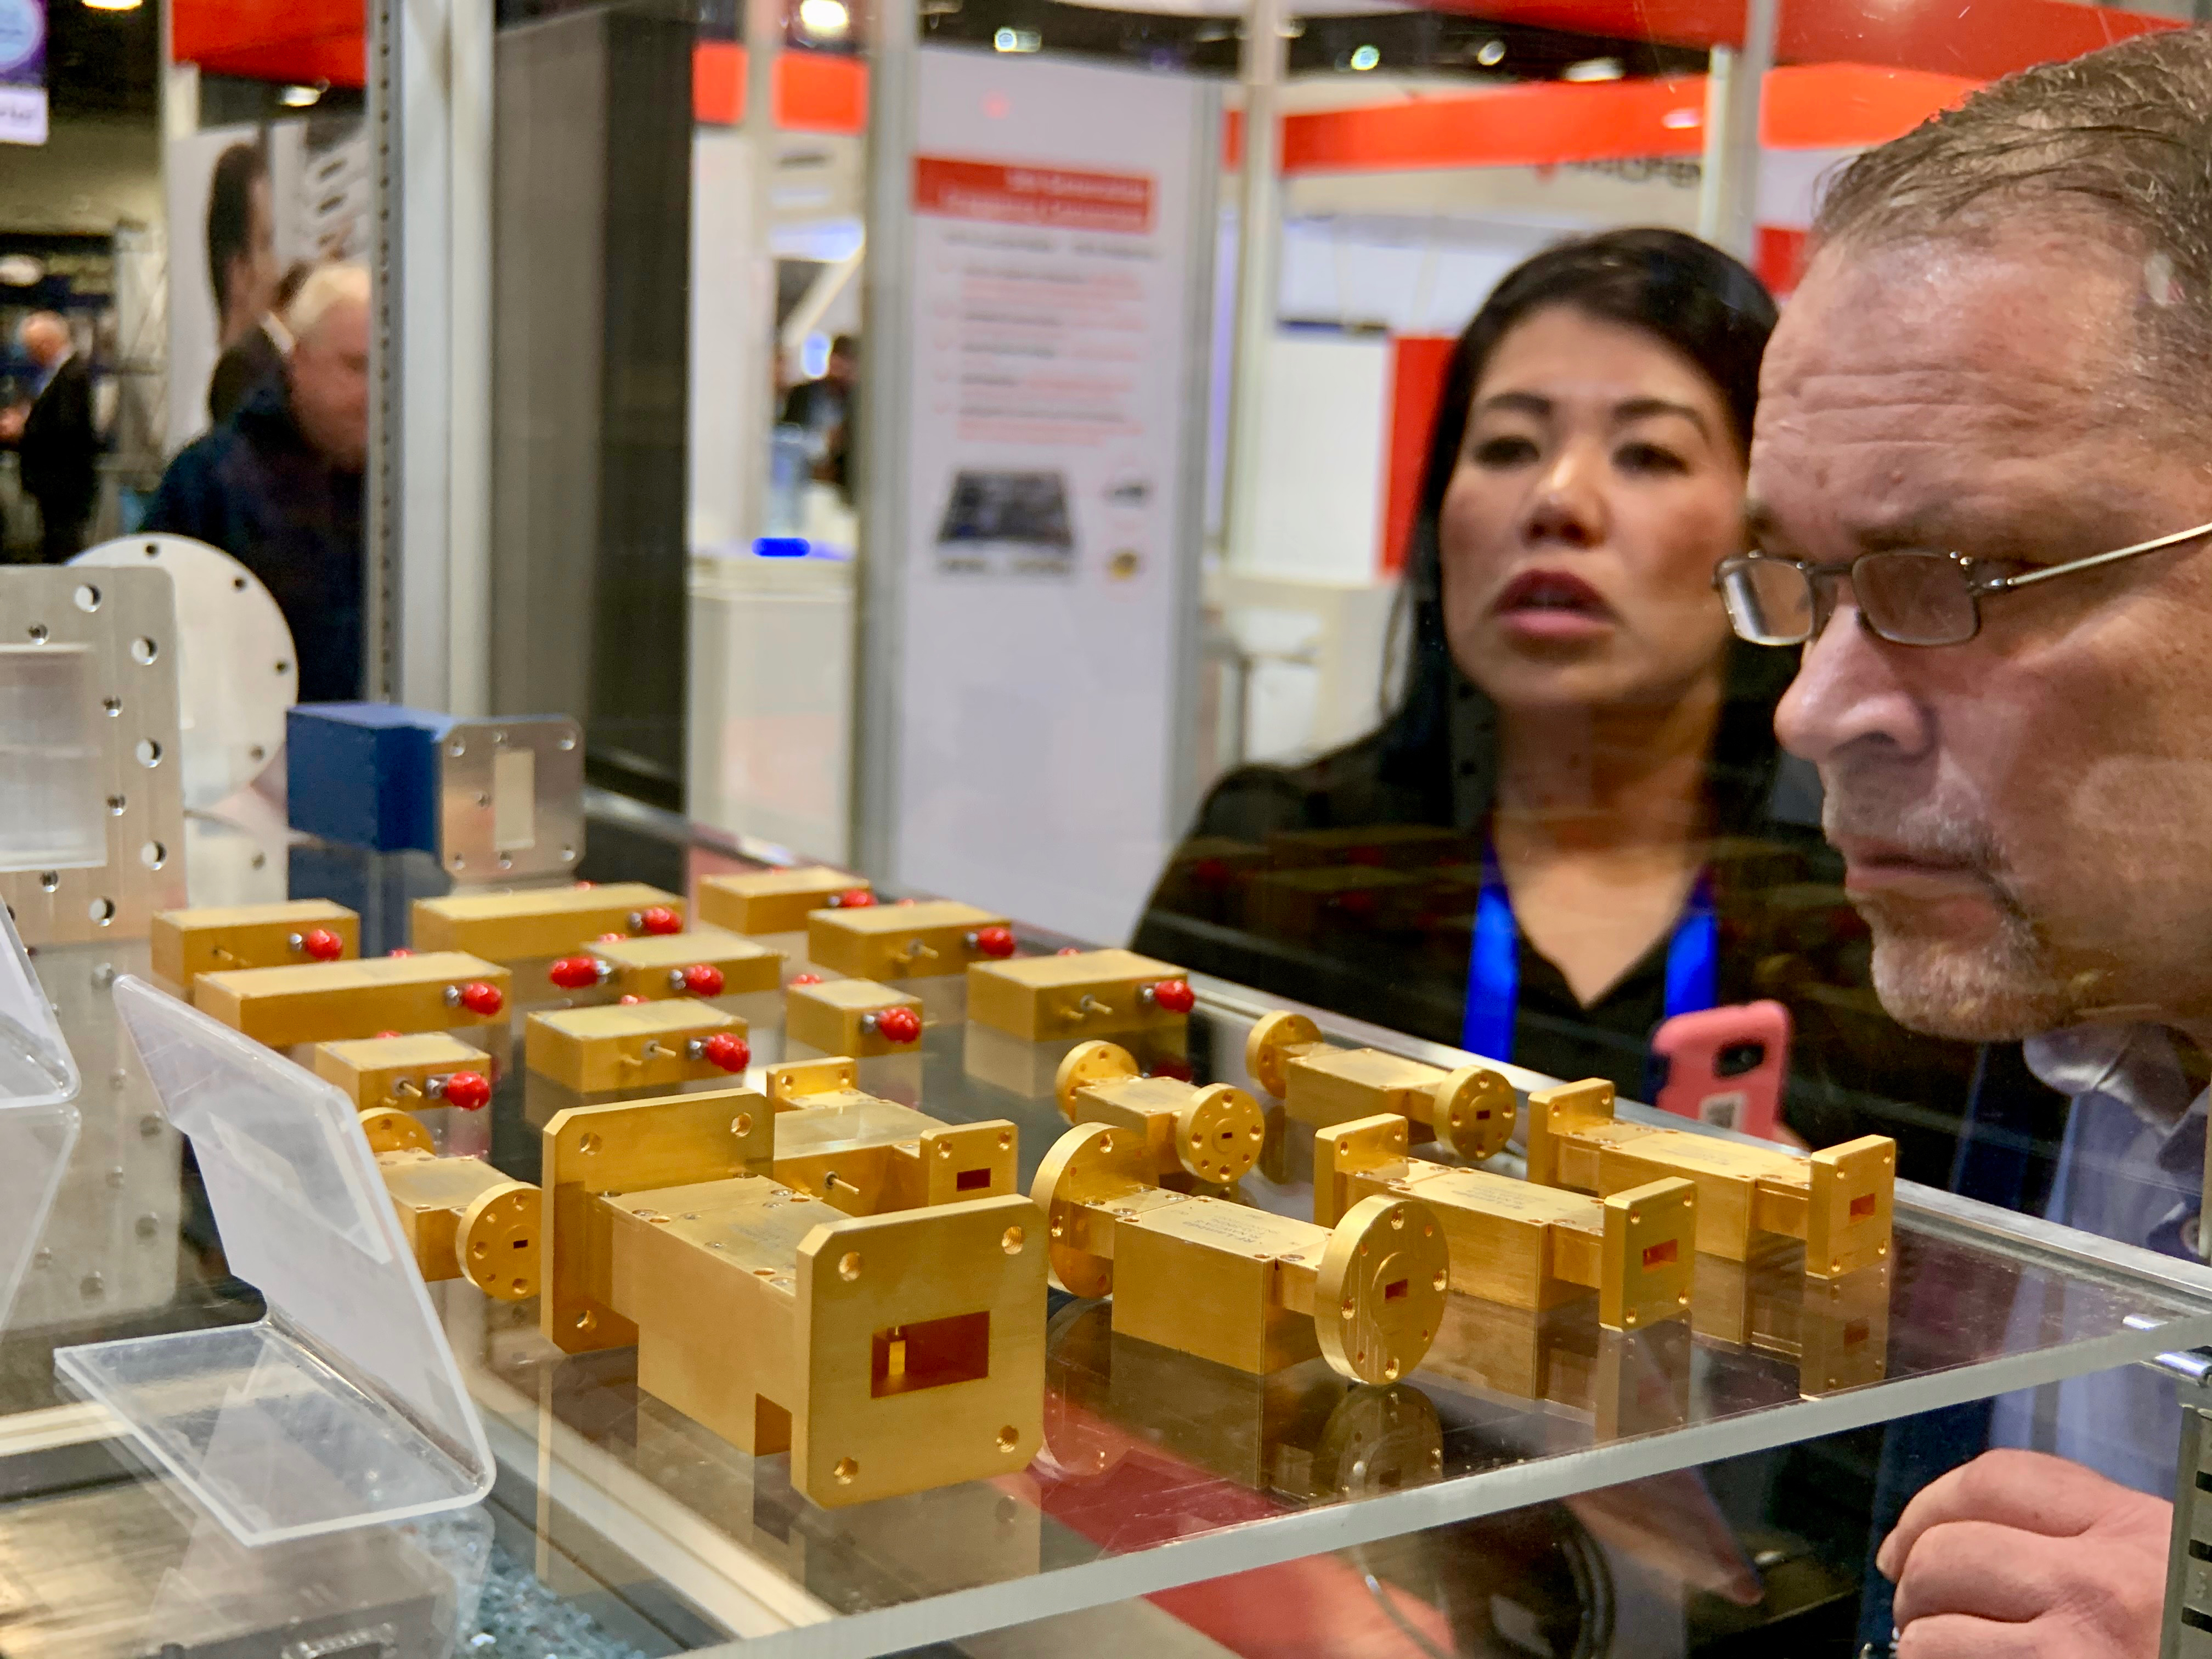 A potential buyer at the RF-Lambda booth gets a closer look at some broadband components.